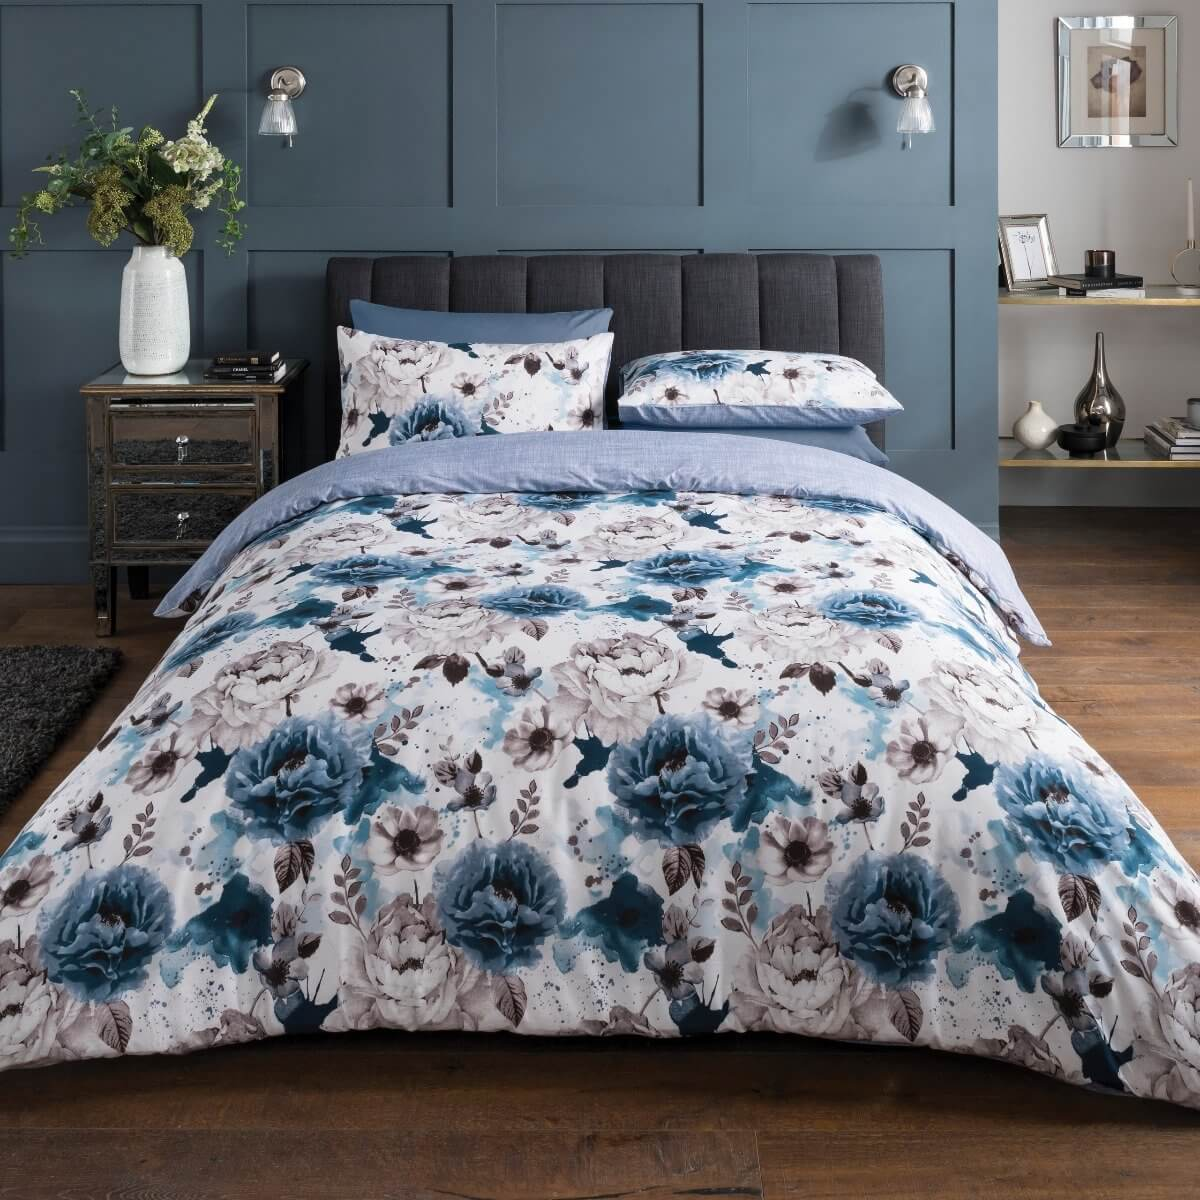 Inky Floral Blue Bedding - Reversible Duvet Cover and Pillowcase Set